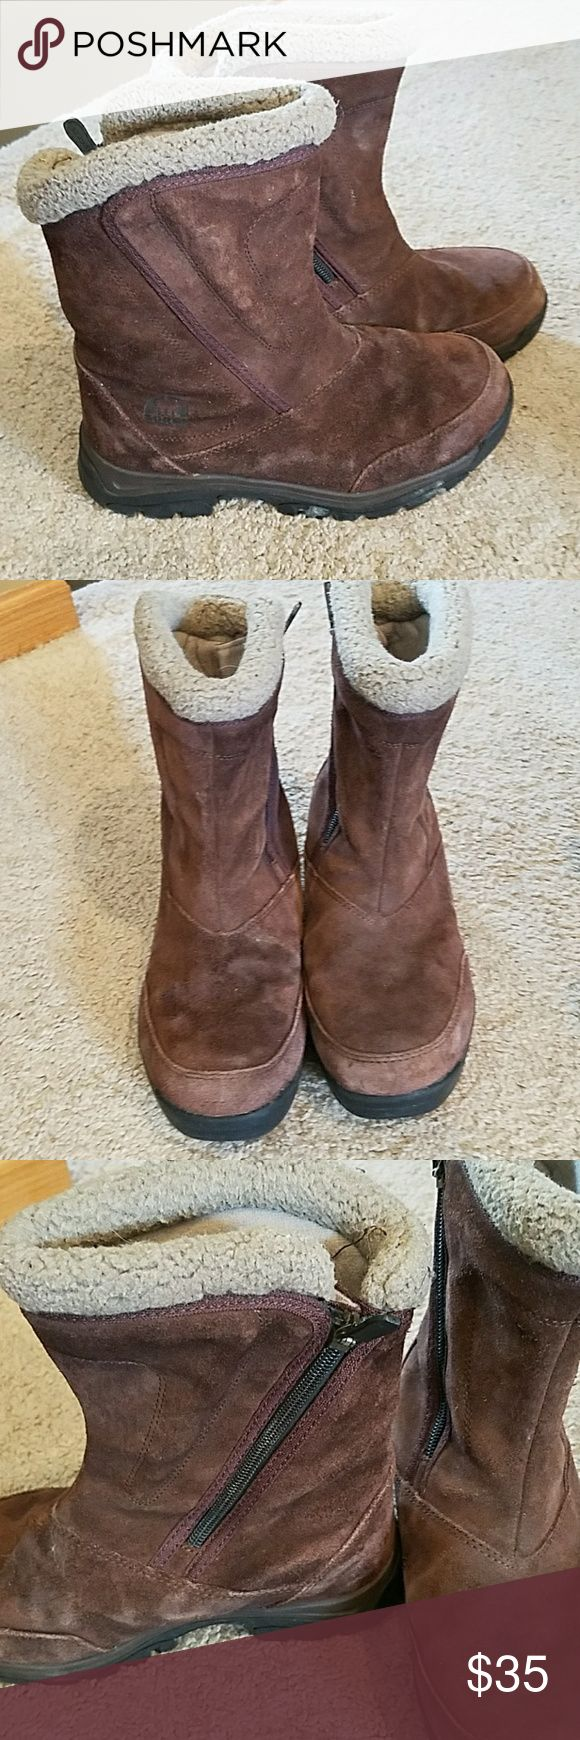 Selling this Sorel thinsulate insulation on Poshmark! My username is: karabrathol. #shopmycloset #poshmark #fashion #shopping #style #forsale #Sorel #Shoes